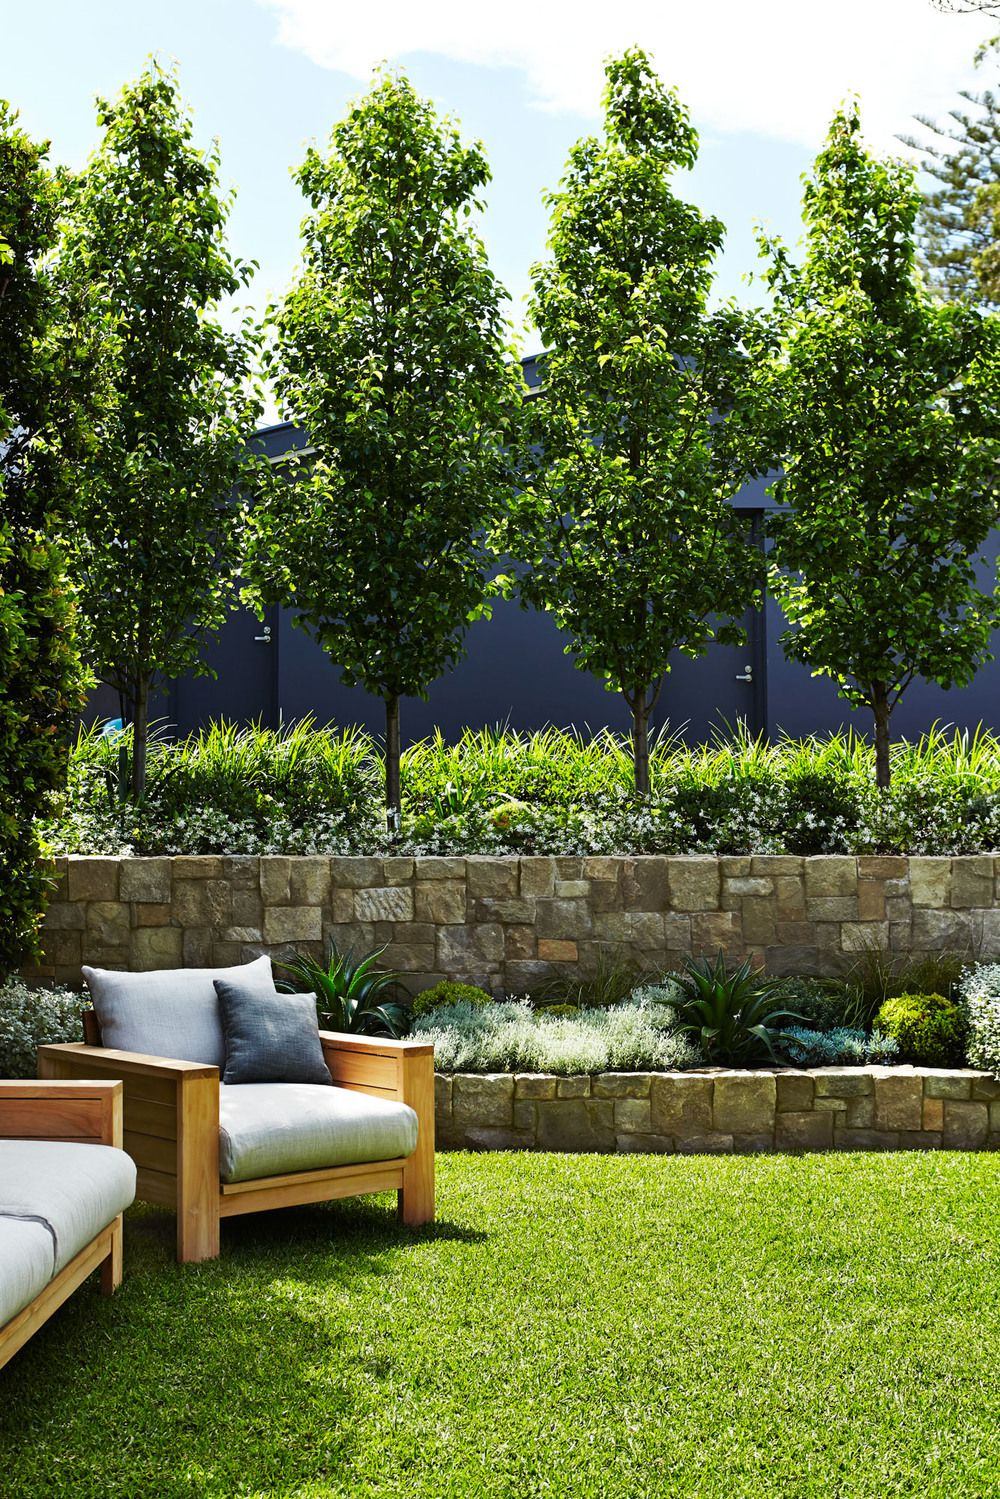 Landscaping With Pear Trees : Fence line ornamental pear jasmine and grass front